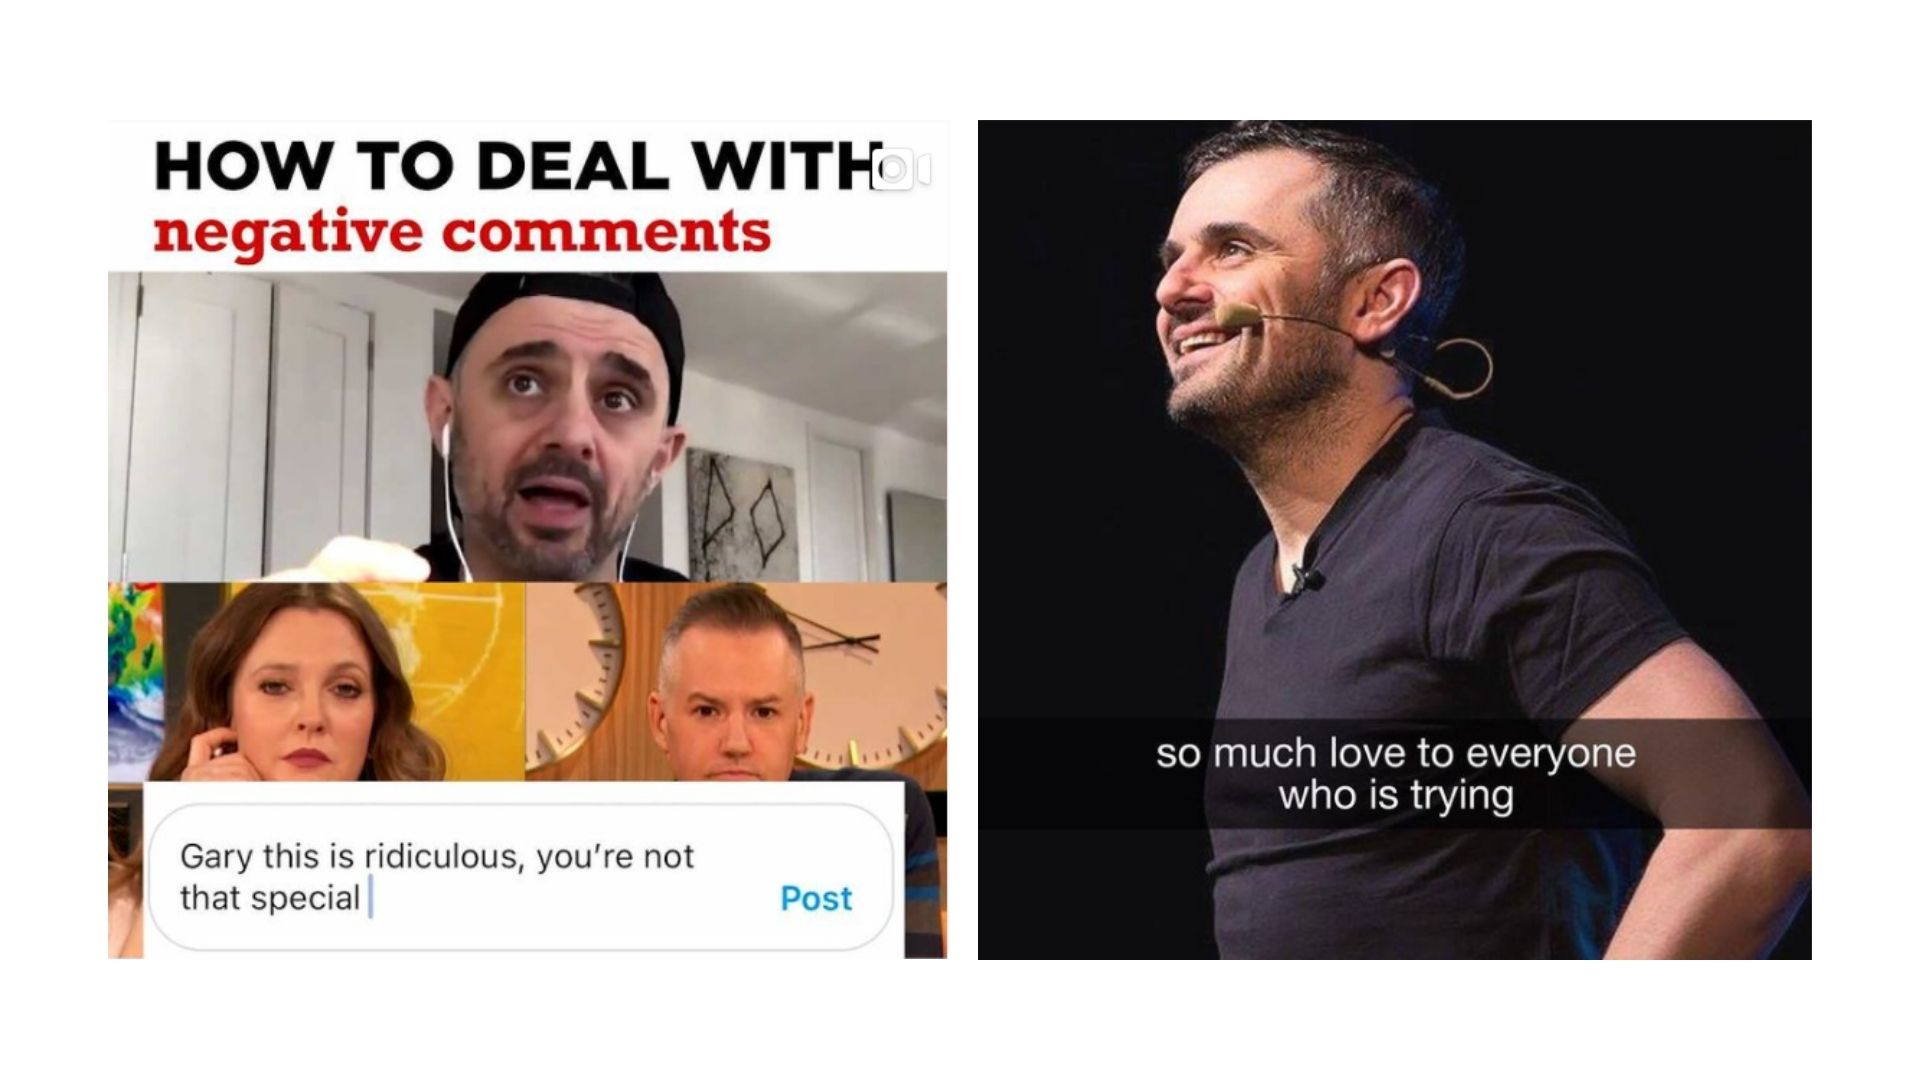 Gary Vaynerchuk - also known as Gary Vee - answers all comments on his social media accounts, no matter how negative.